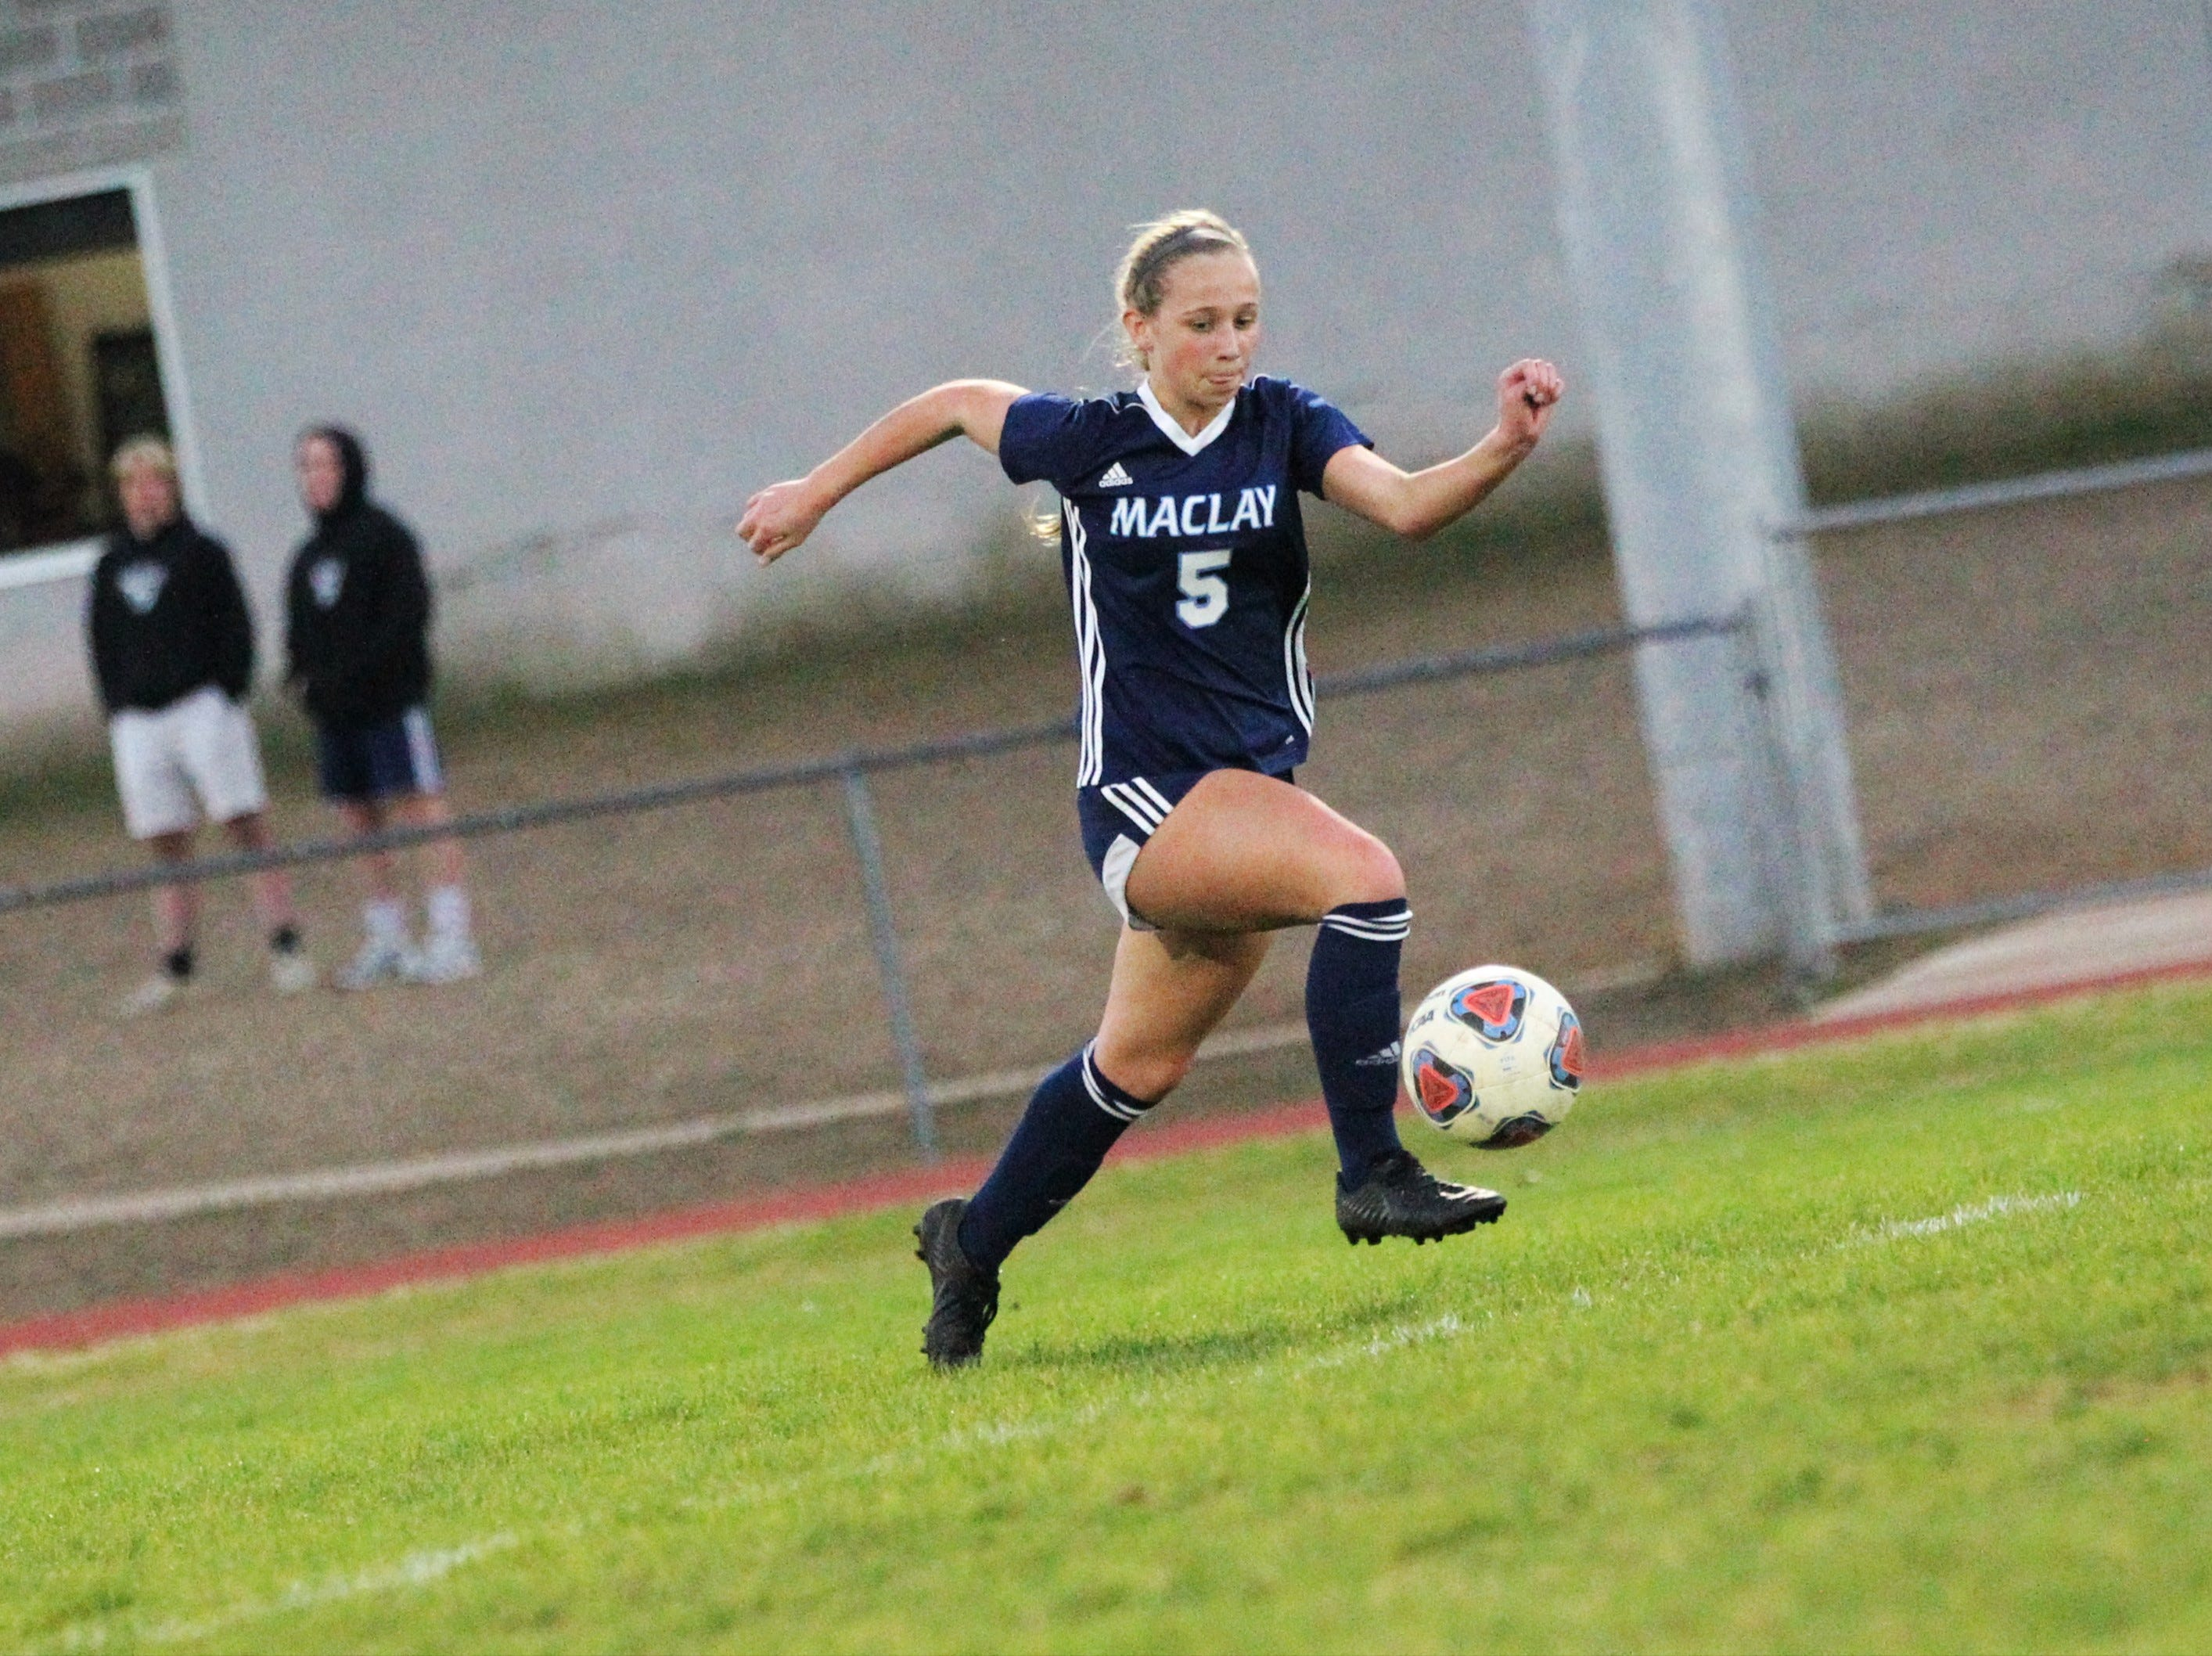 Maclay's Katelyn Dessi races down the left side as Maclay's girls soccer team beat St. Joseph Academy 4-0 in a Region 1-1A quarterfinal on Jan. 5, 2019.